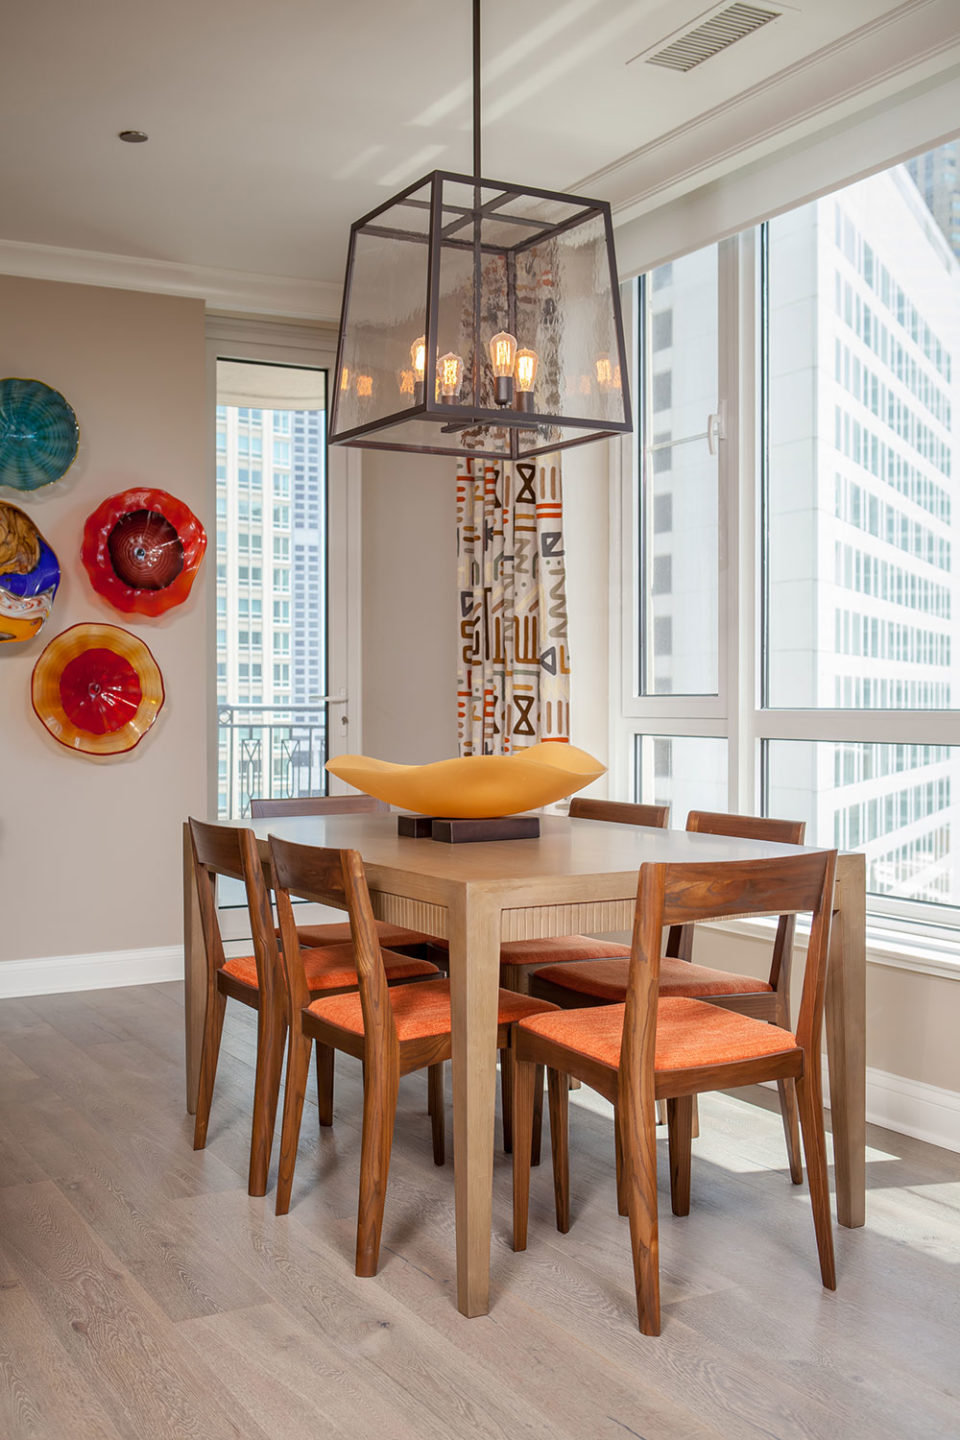 Mid-Century Modern Chairs in Colorful Breakfast Area